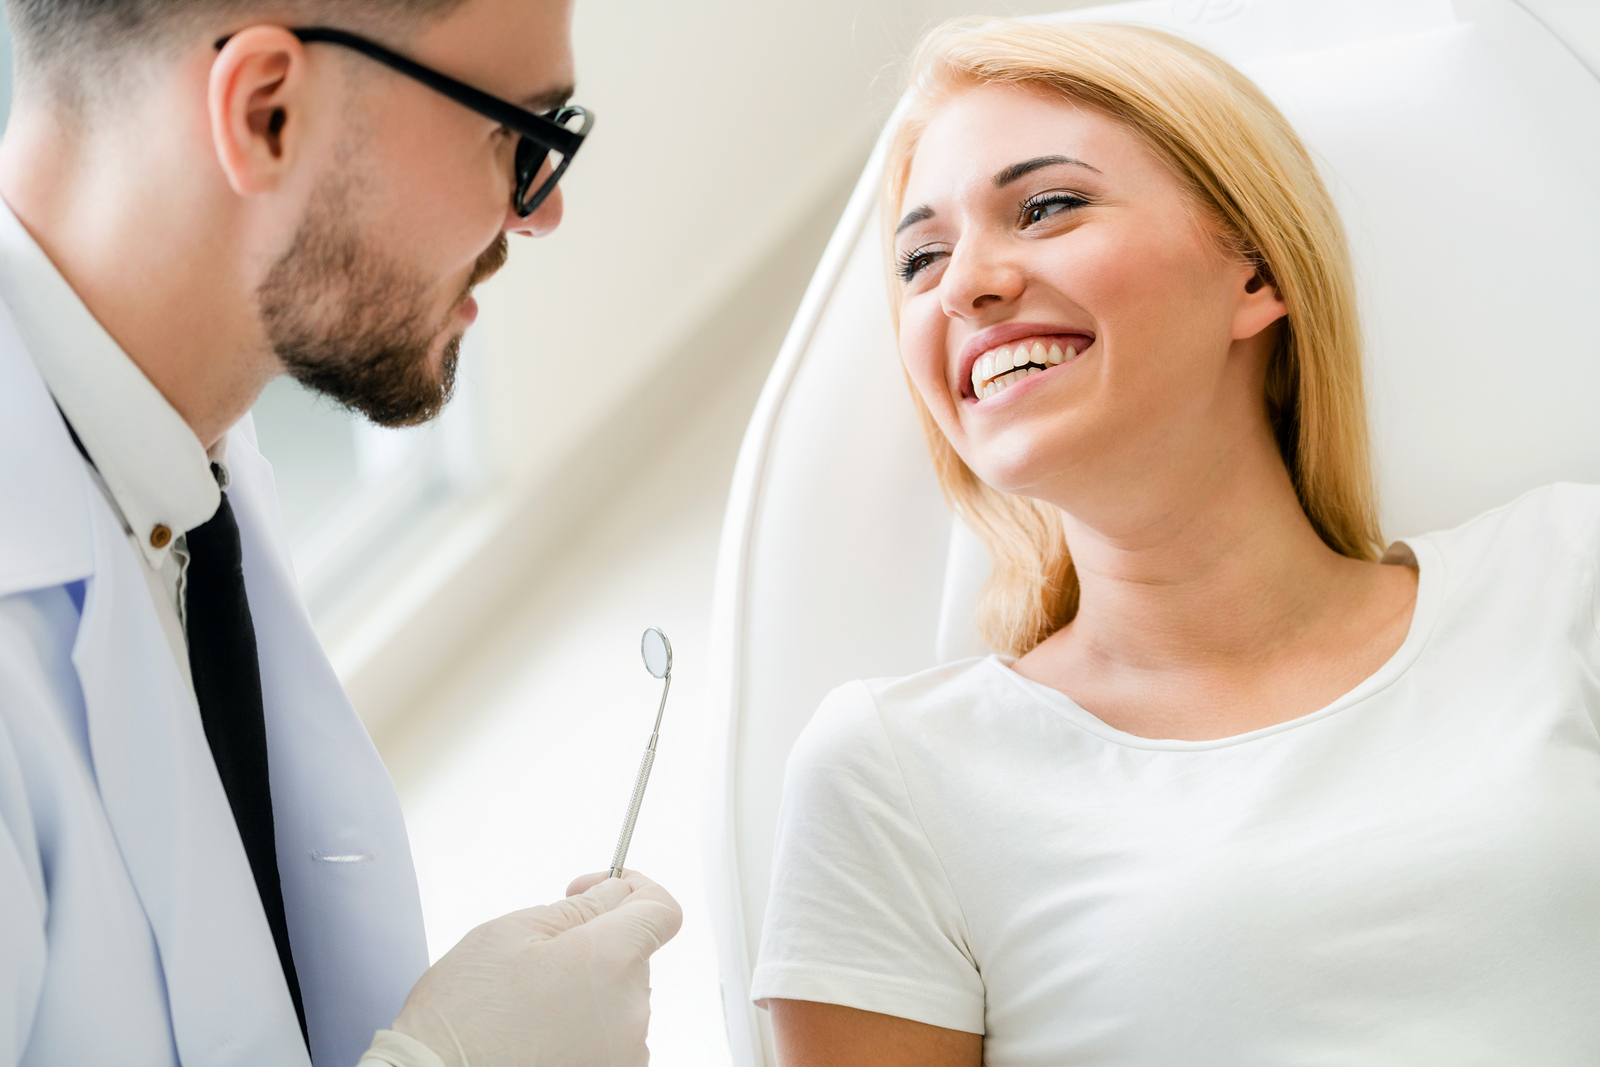 How Routine Dental Checkups Help Your Smile in the Long Run